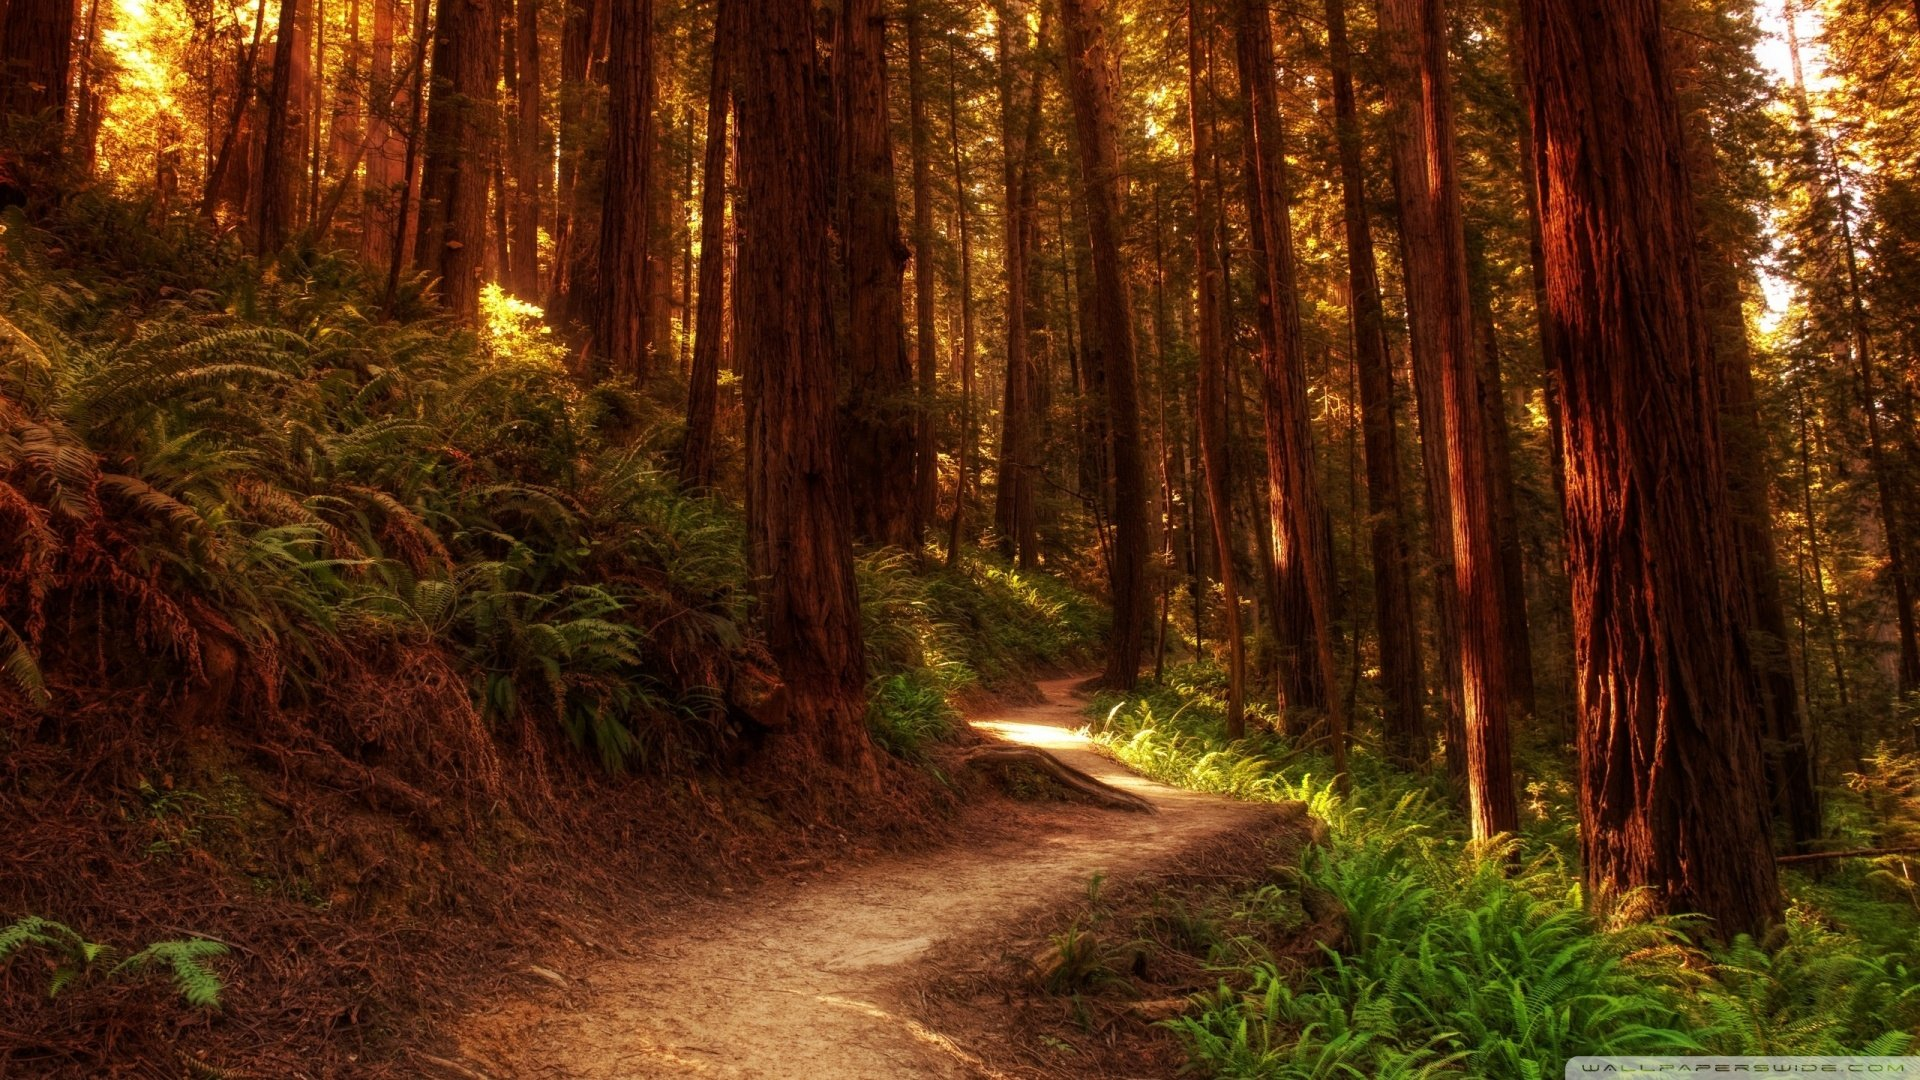 46 Redwoods Backgrounds And Wallpapers On Wallpapersafari